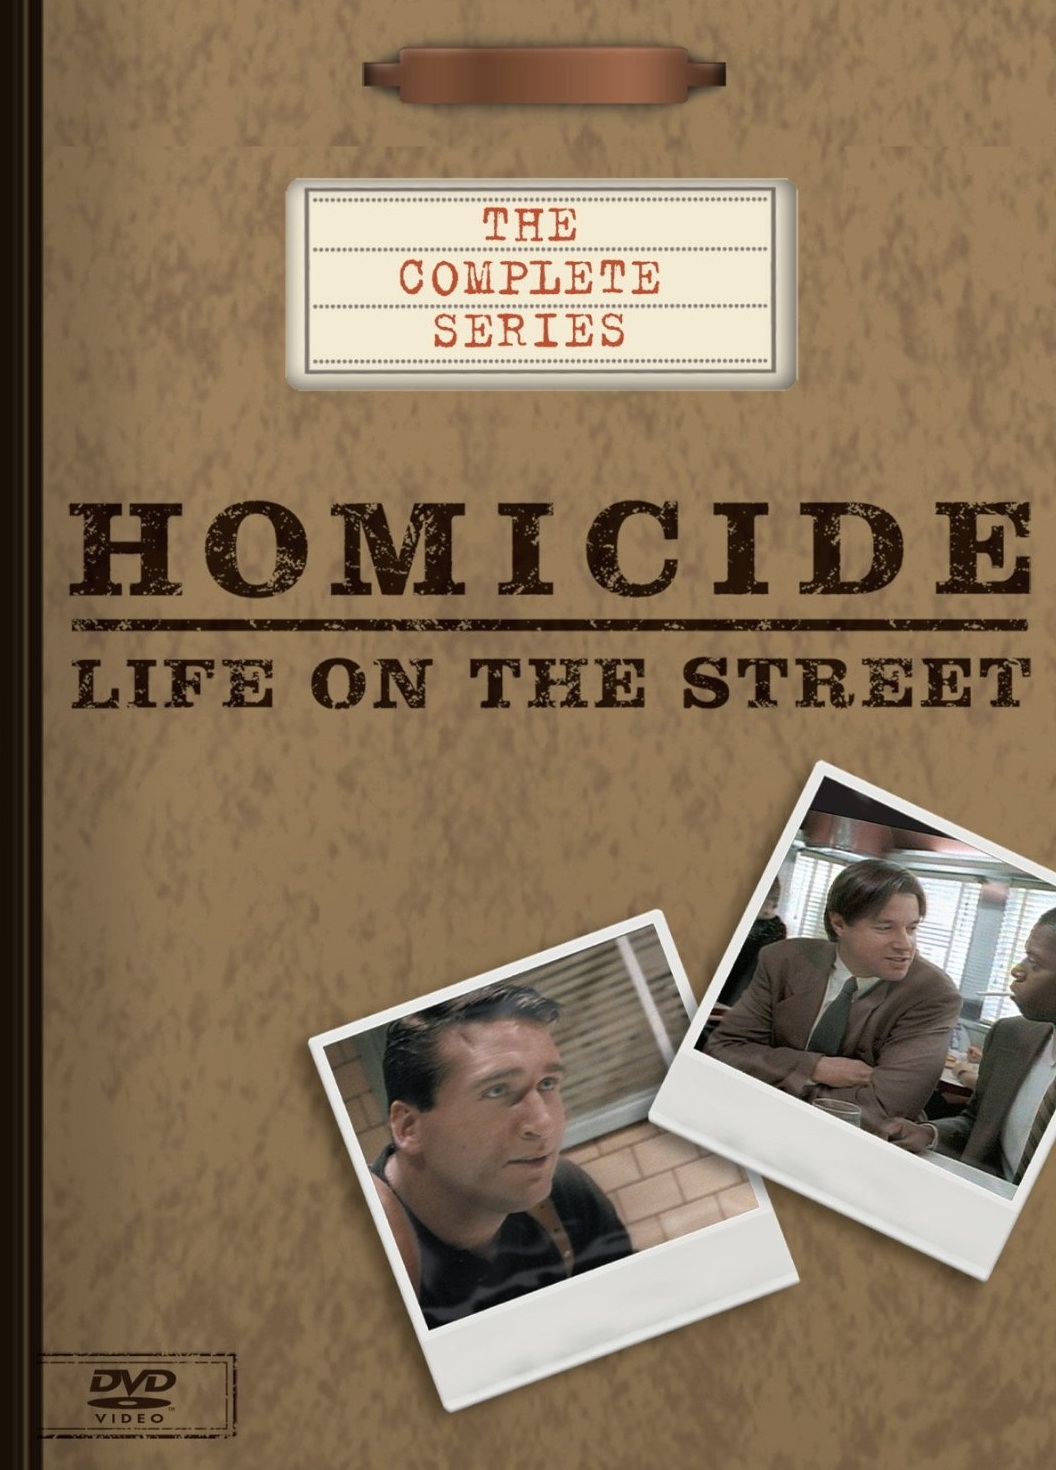 Homicide: Life on the Street DVDs